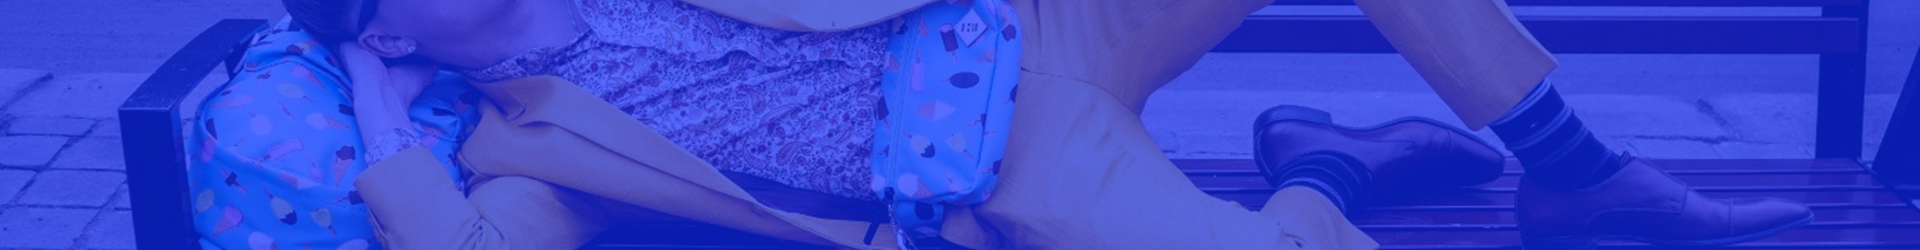 Backpacks and bags | Free delivery for orders above 20€. Always. | monmon.fi